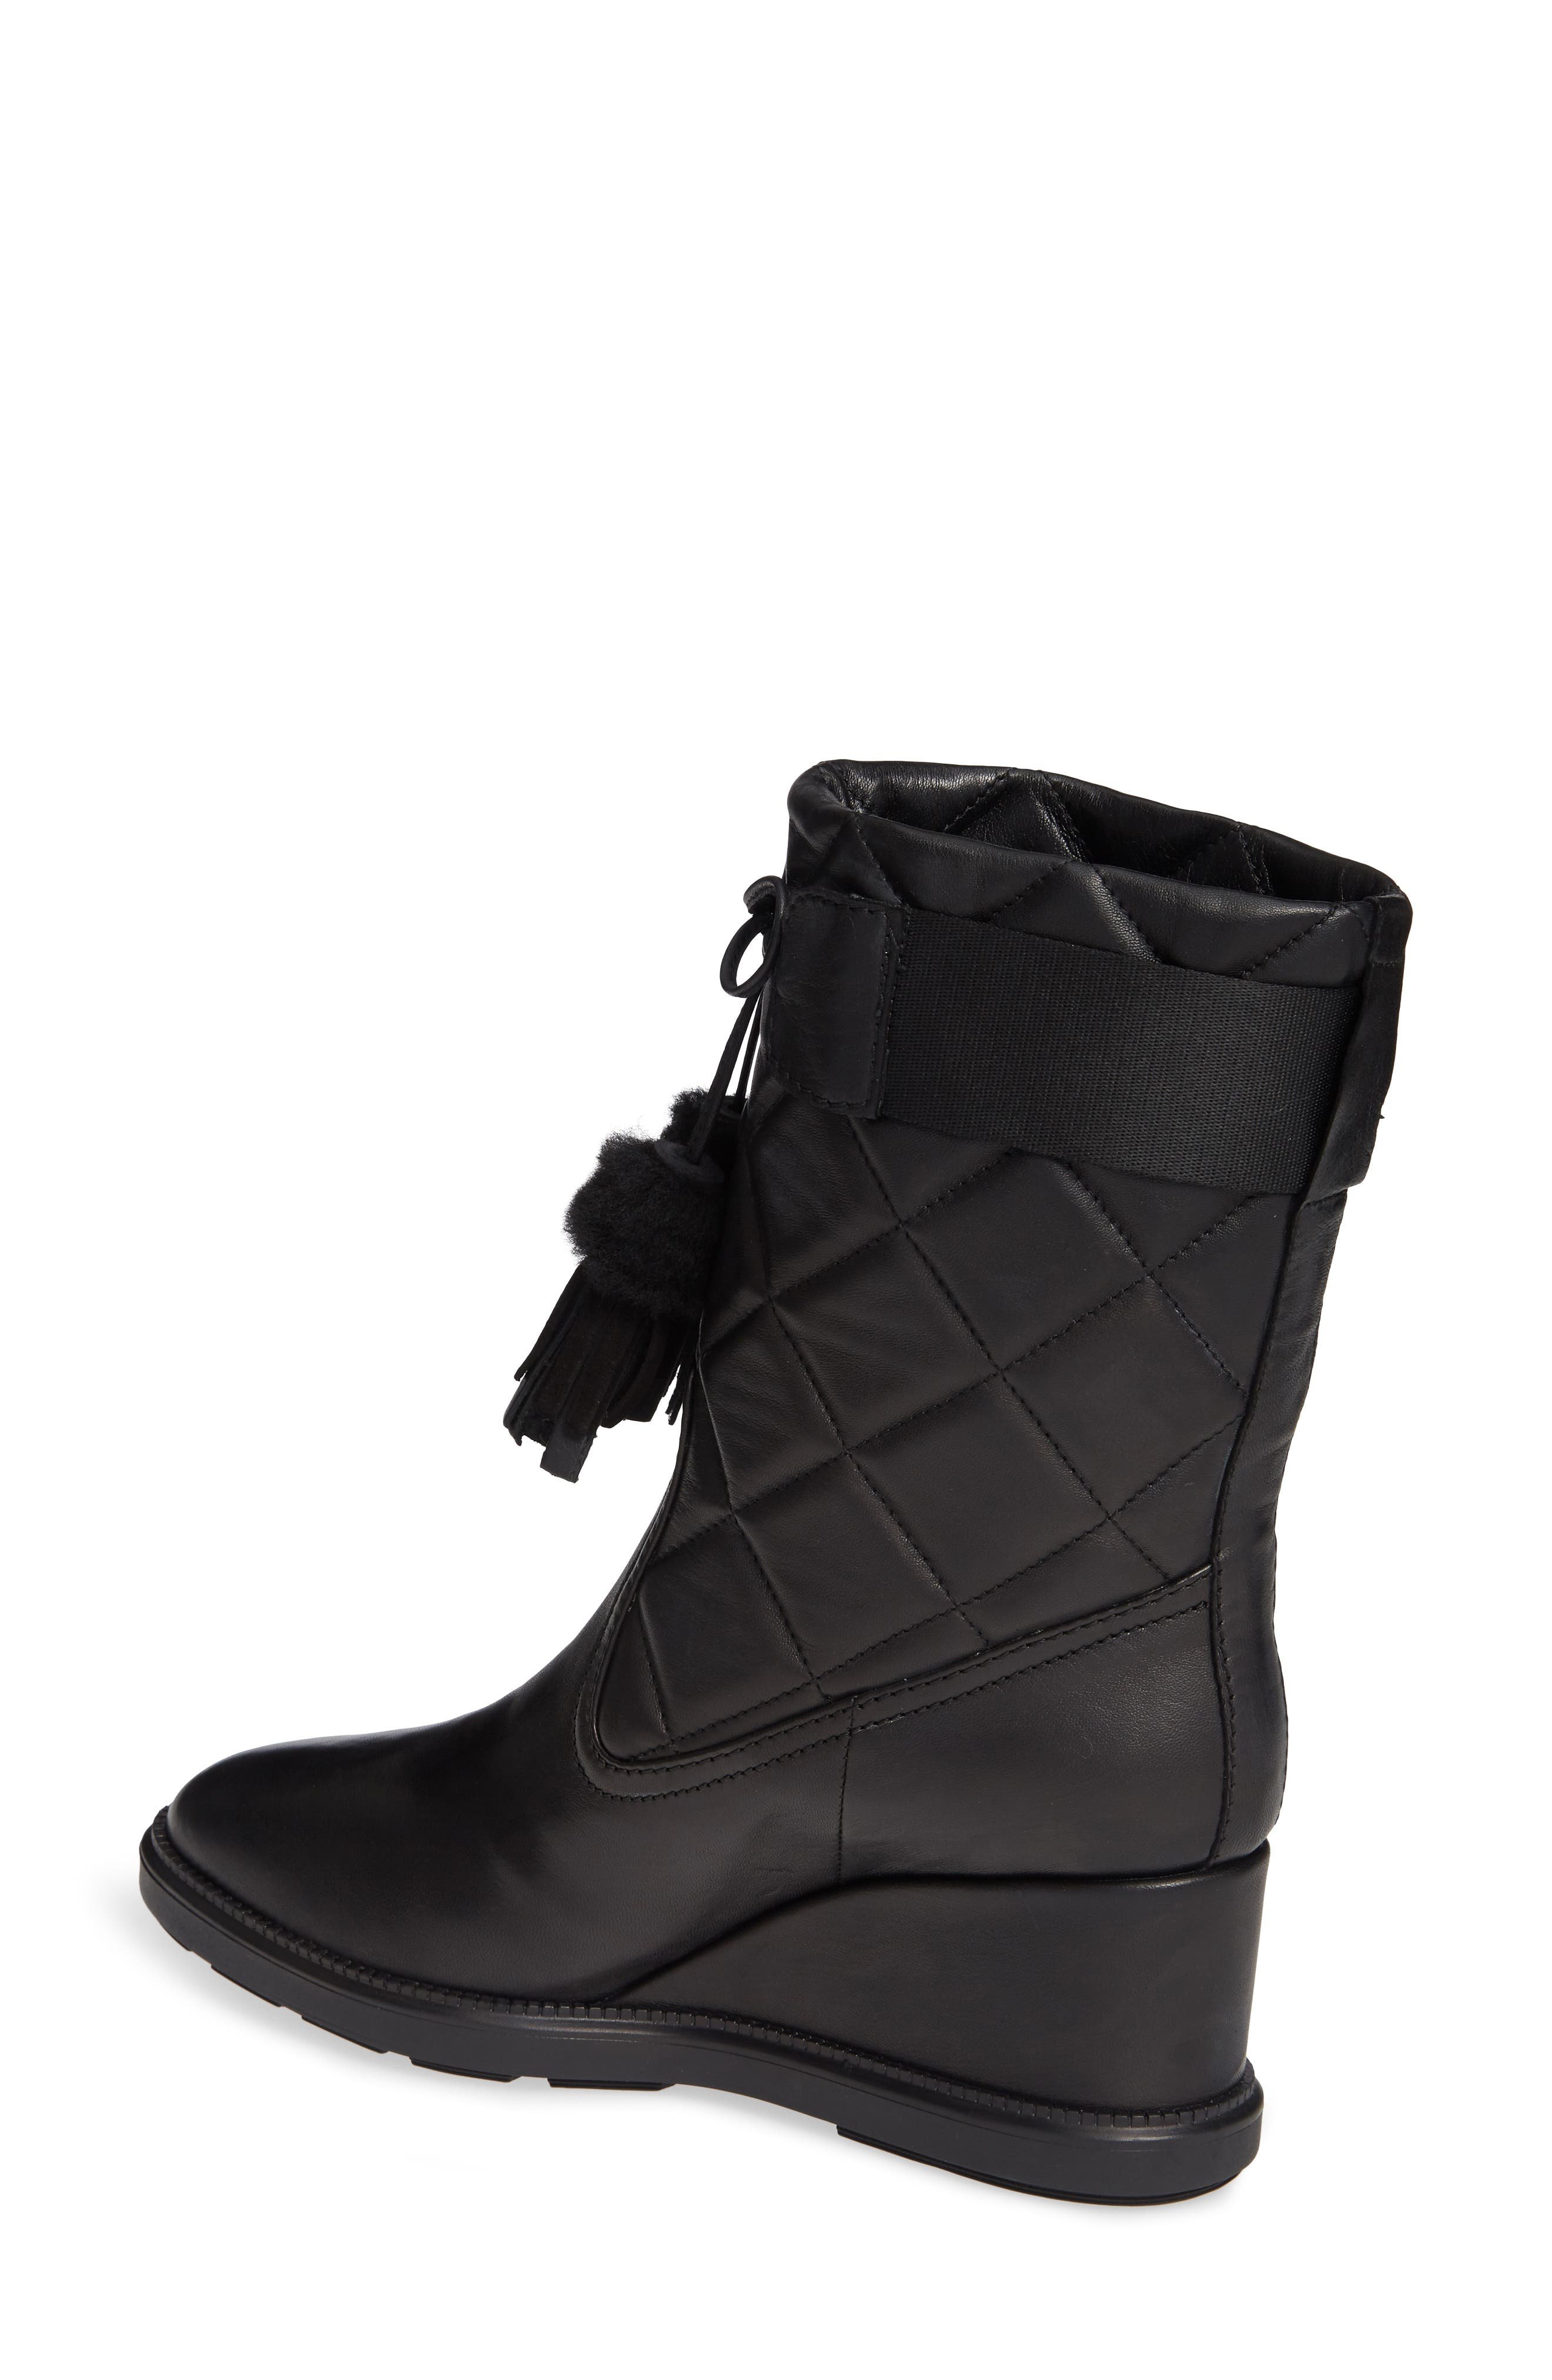 Caliana Water Resistant Genuine Shearling Lined Boot,                             Alternate thumbnail 2, color,                             BLACK NAPPA